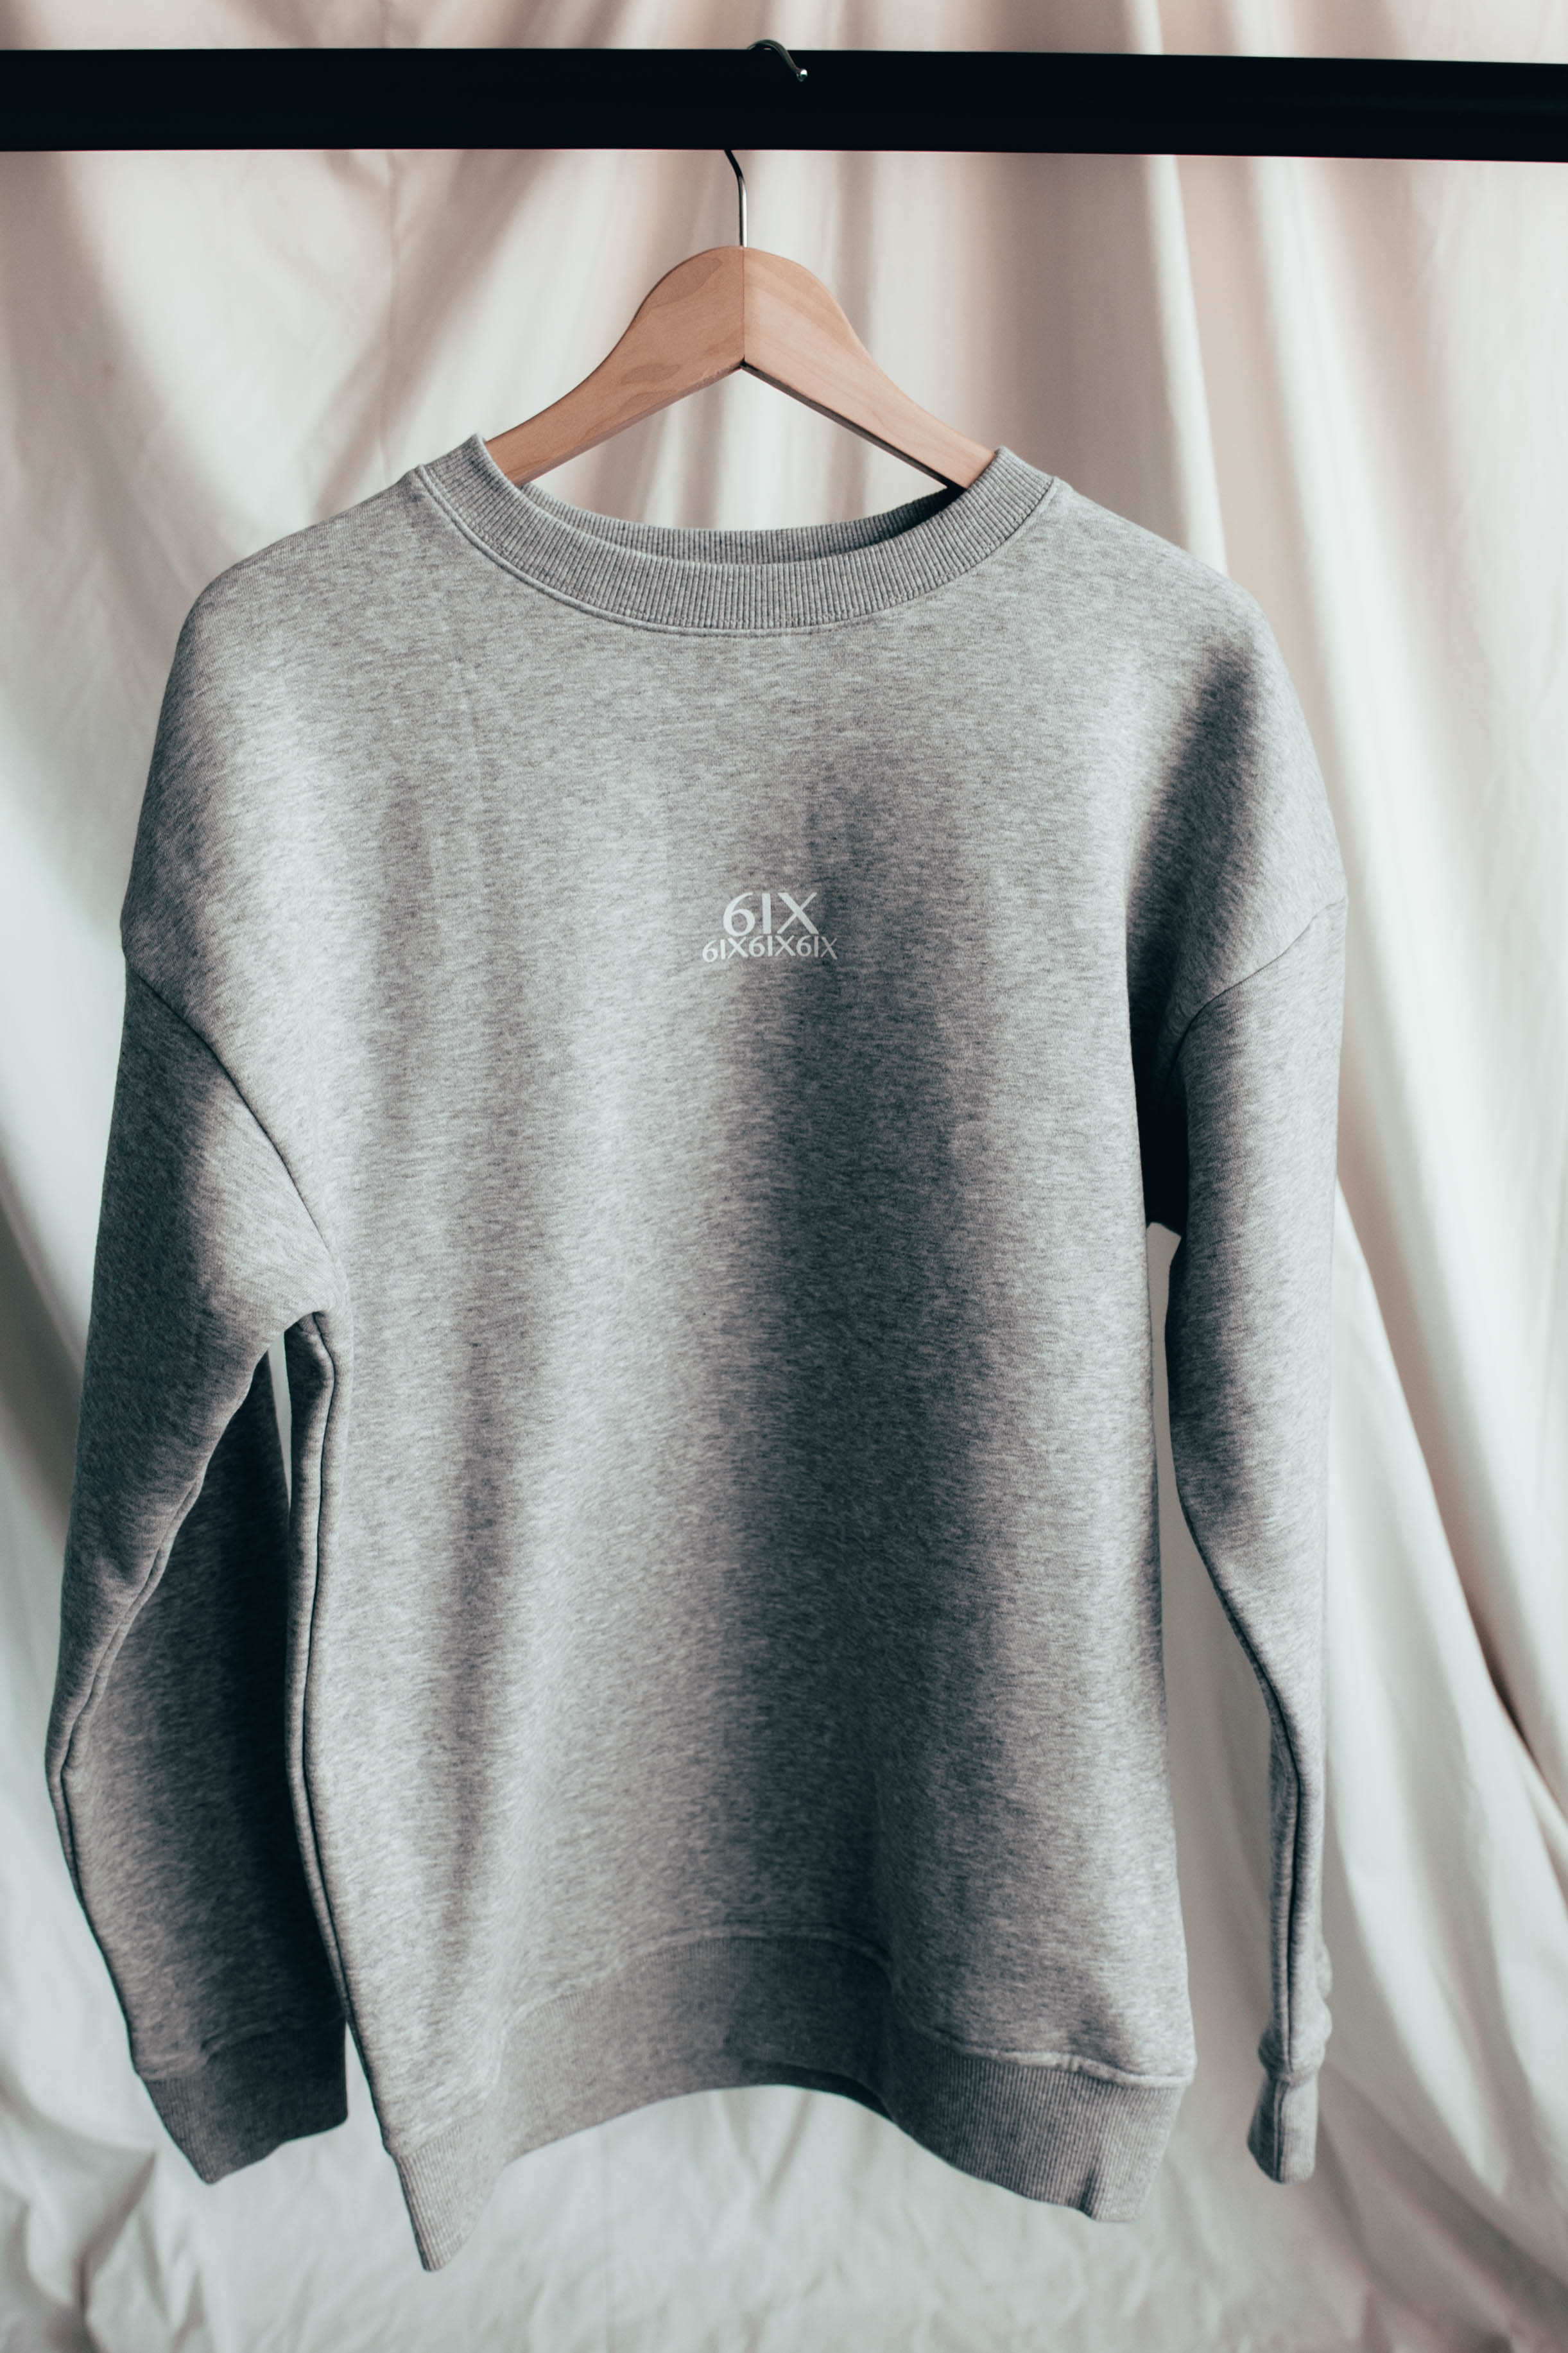 6IX CREW NECK JUMPER GREY - 6IX Collection